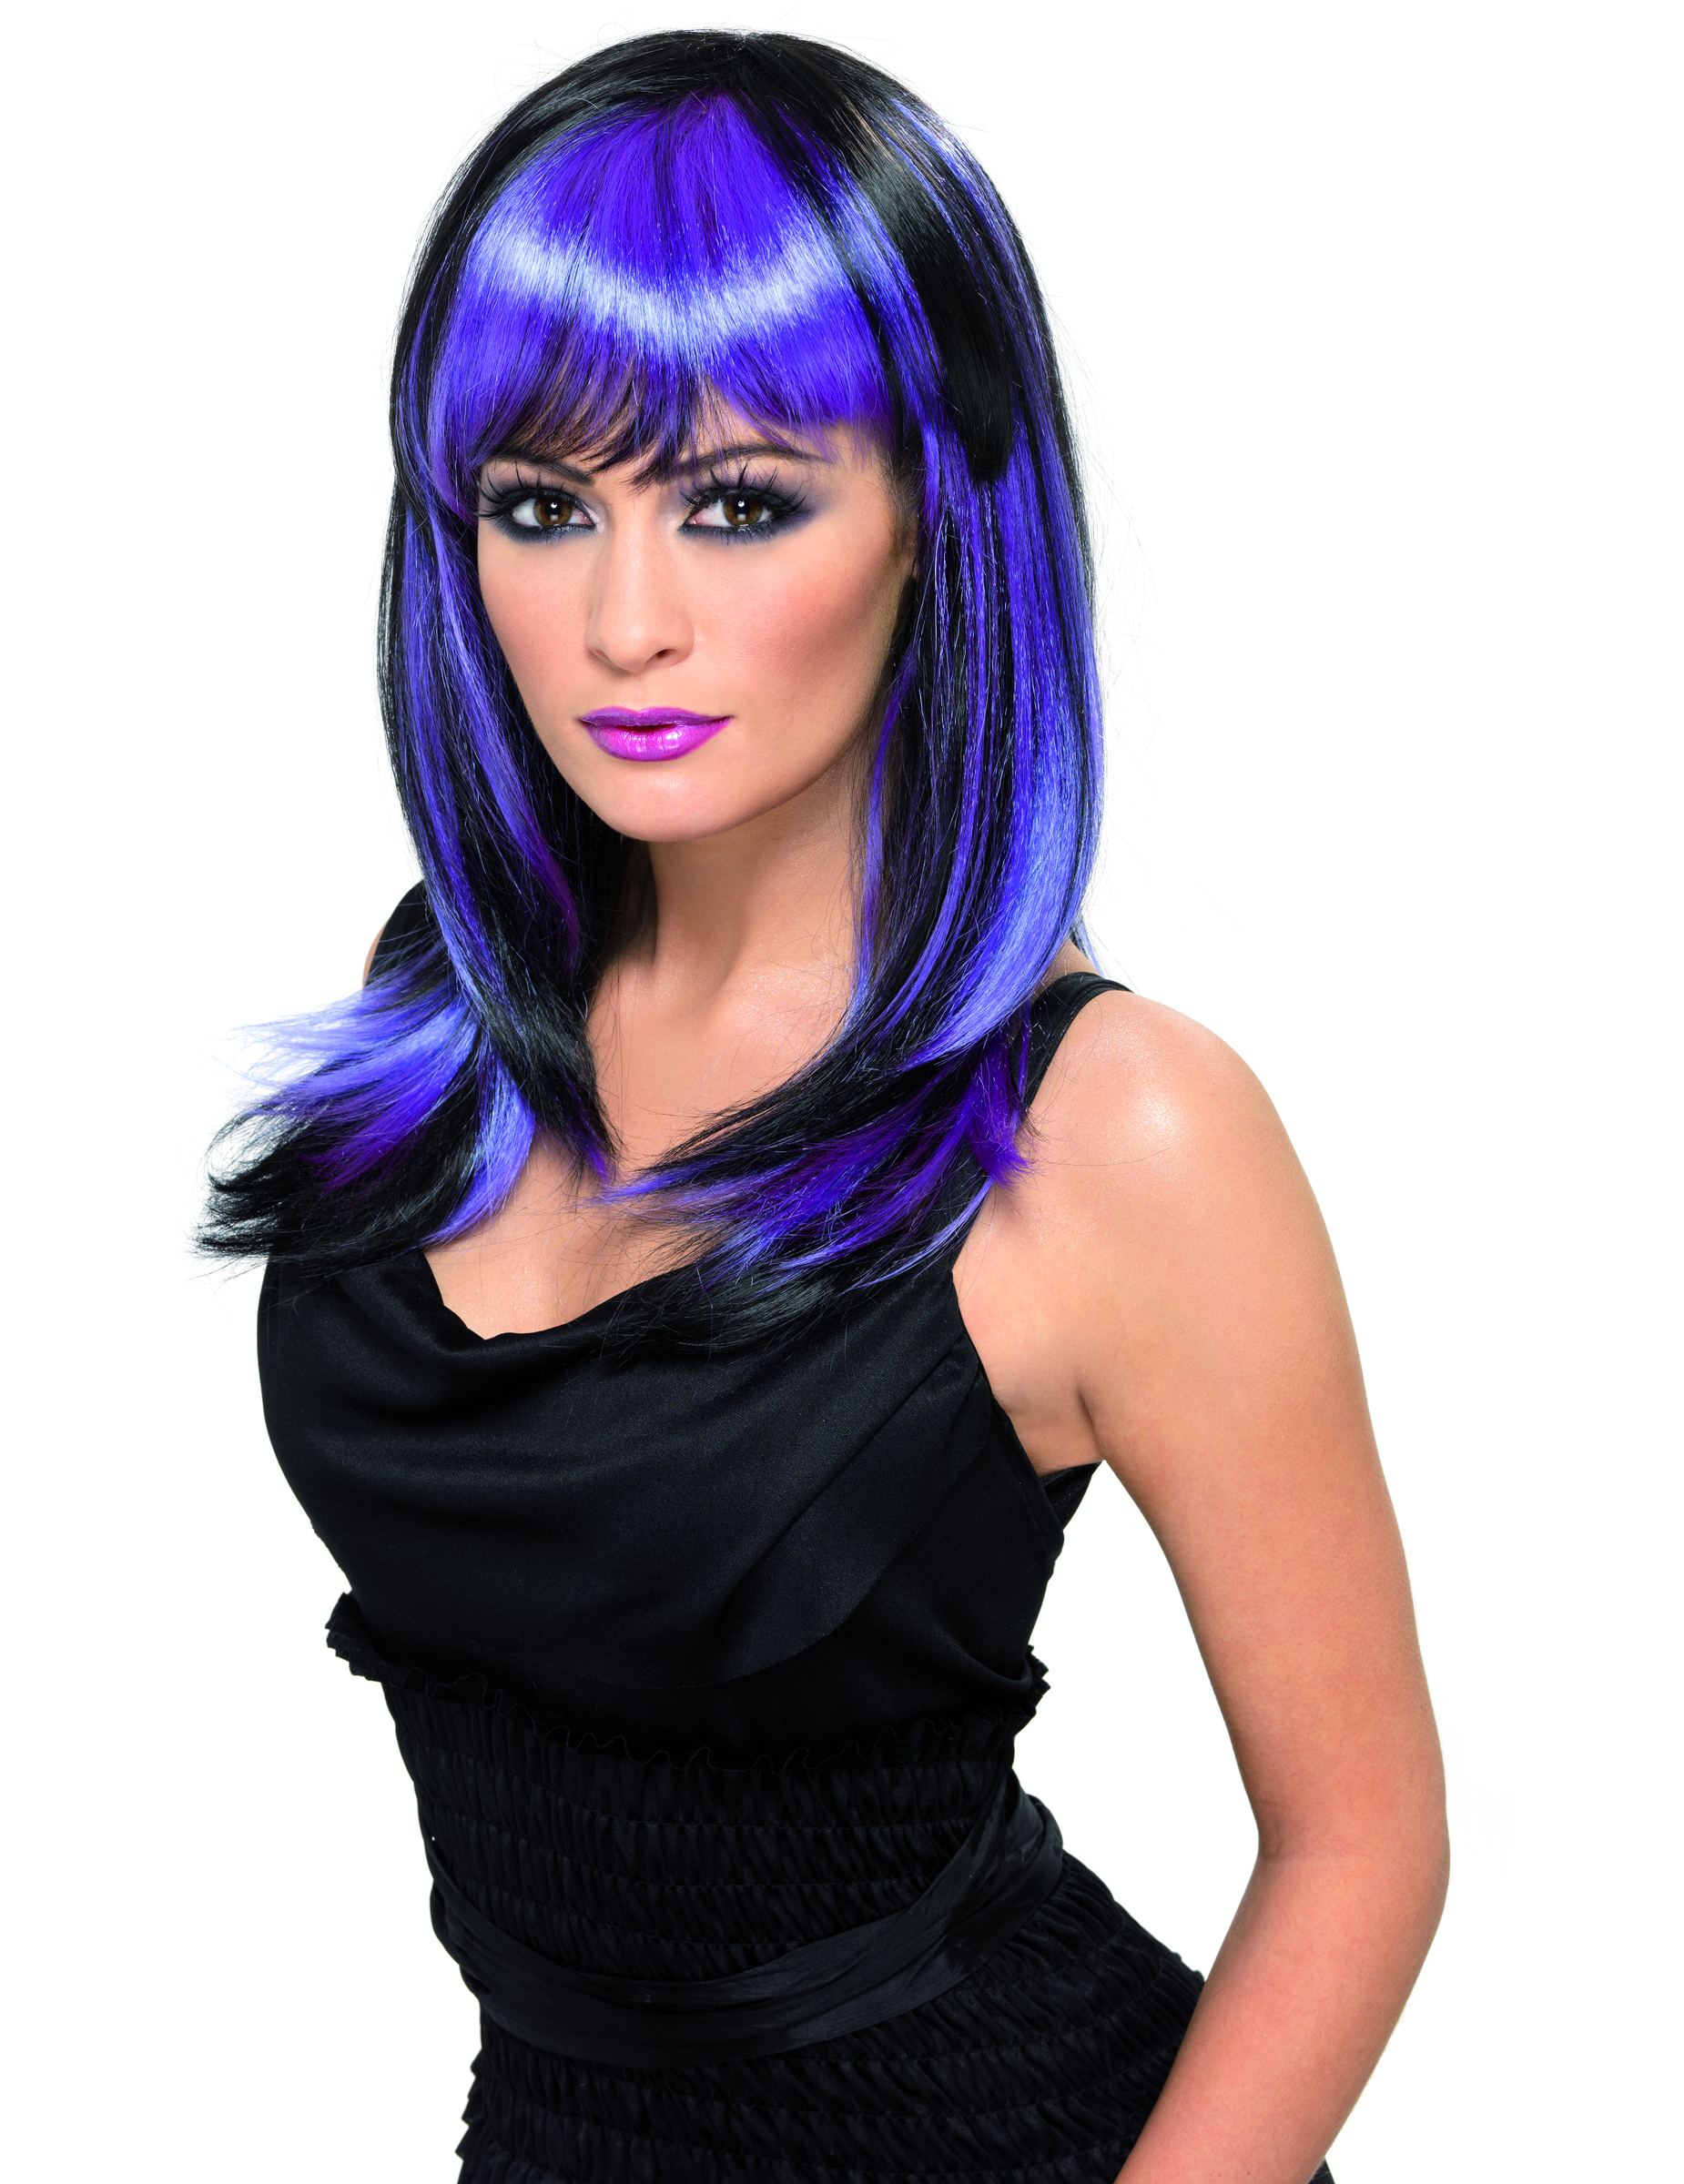 Main - Wigs - Long black wig with violet highlights.